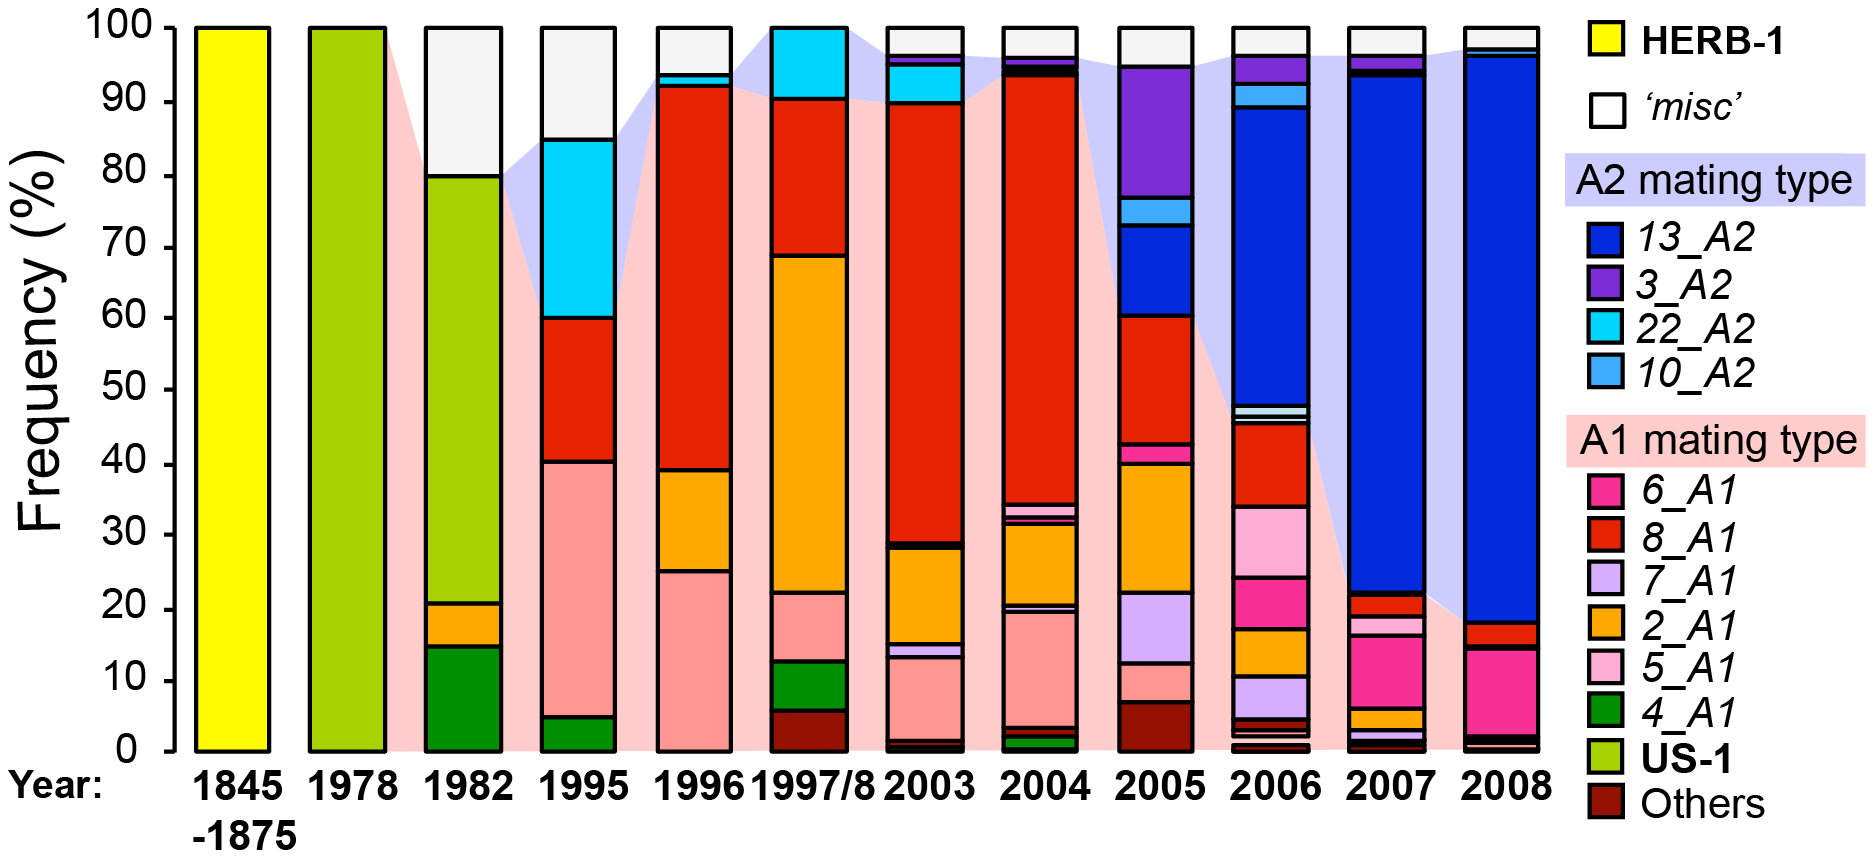 The rise and fall of <i>P. infestans</i> lineages in the British Isles.